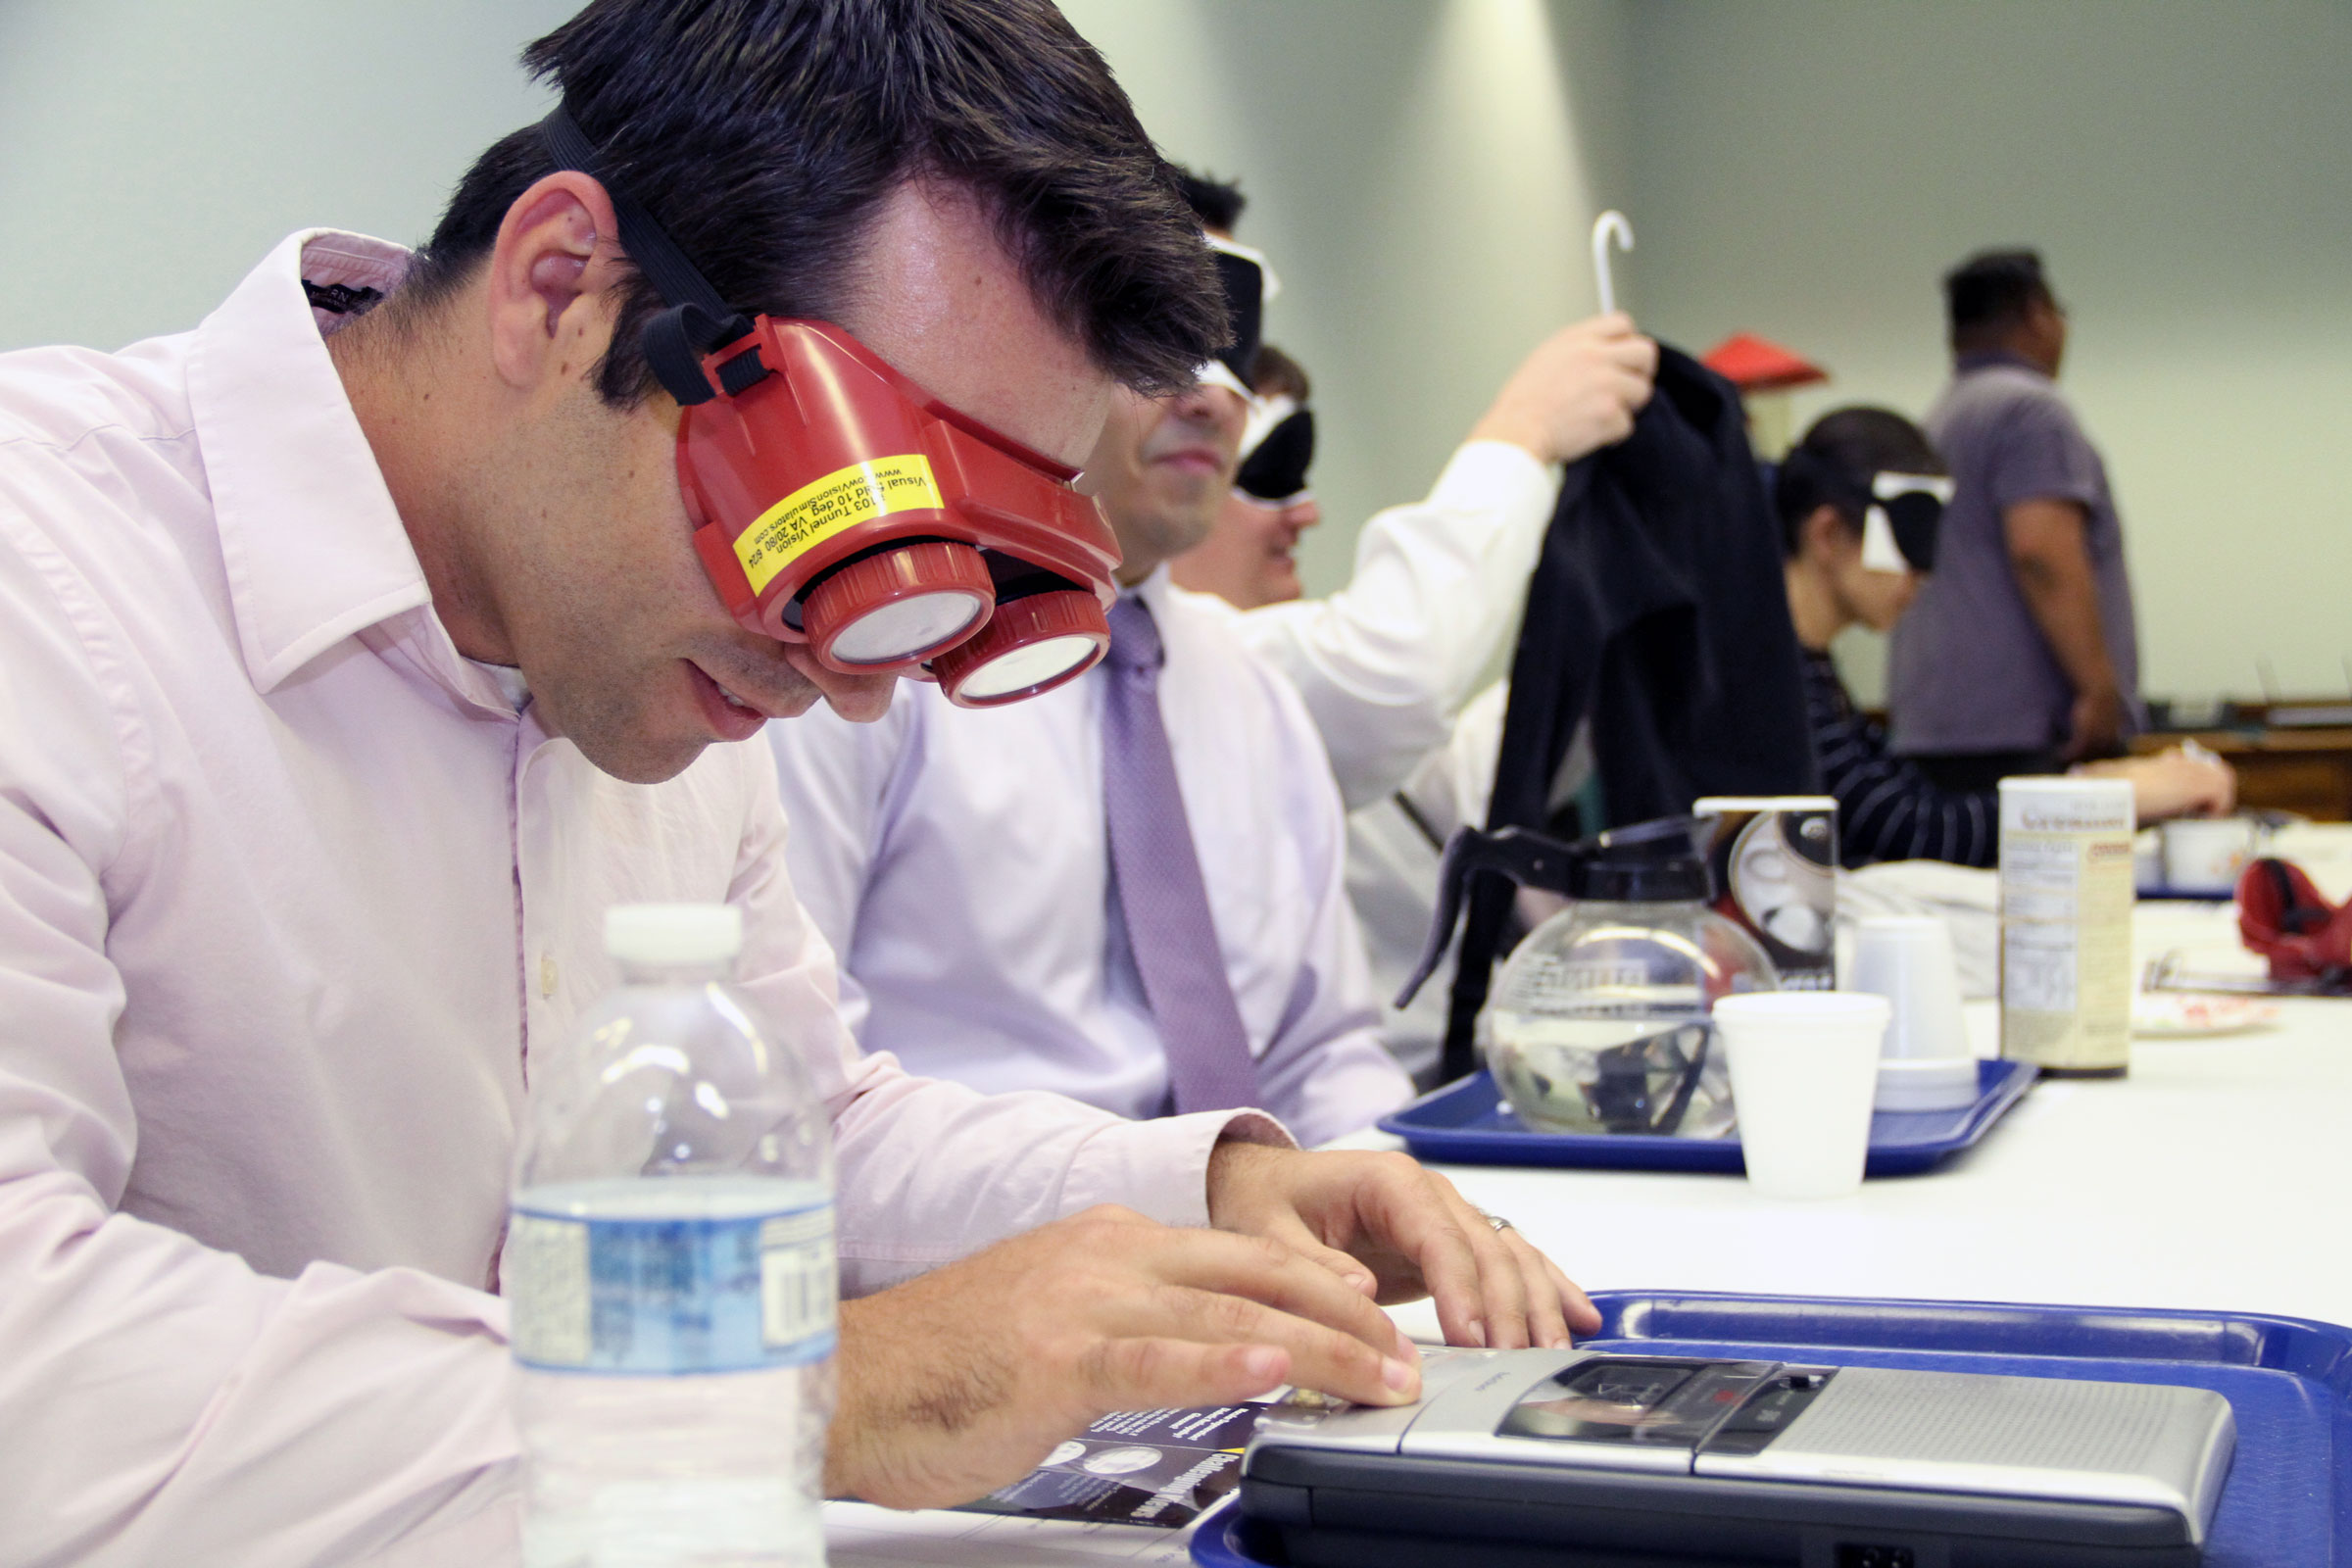 A group of attendees sitting at a table wearing blindfolds or low vision simulators attempting to do various daily living tasks